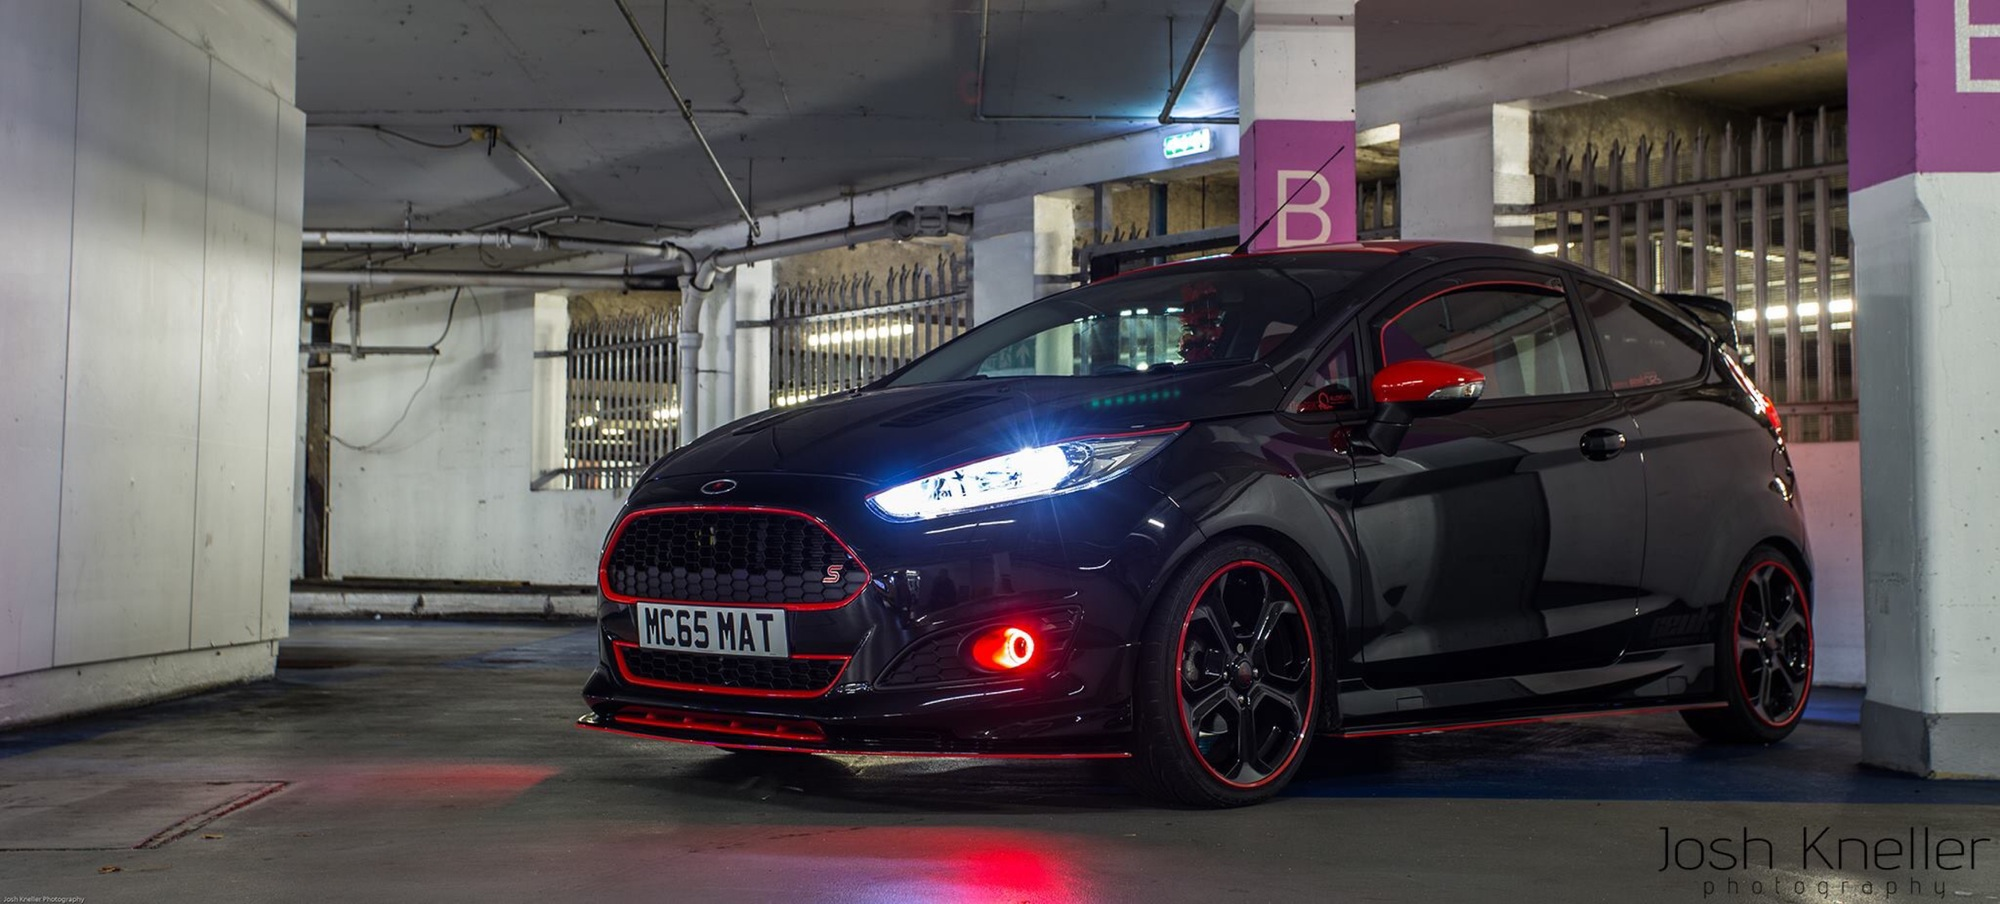 2017 fiesta st line black edition ford fiesta club ford owners club ford forums. Black Bedroom Furniture Sets. Home Design Ideas